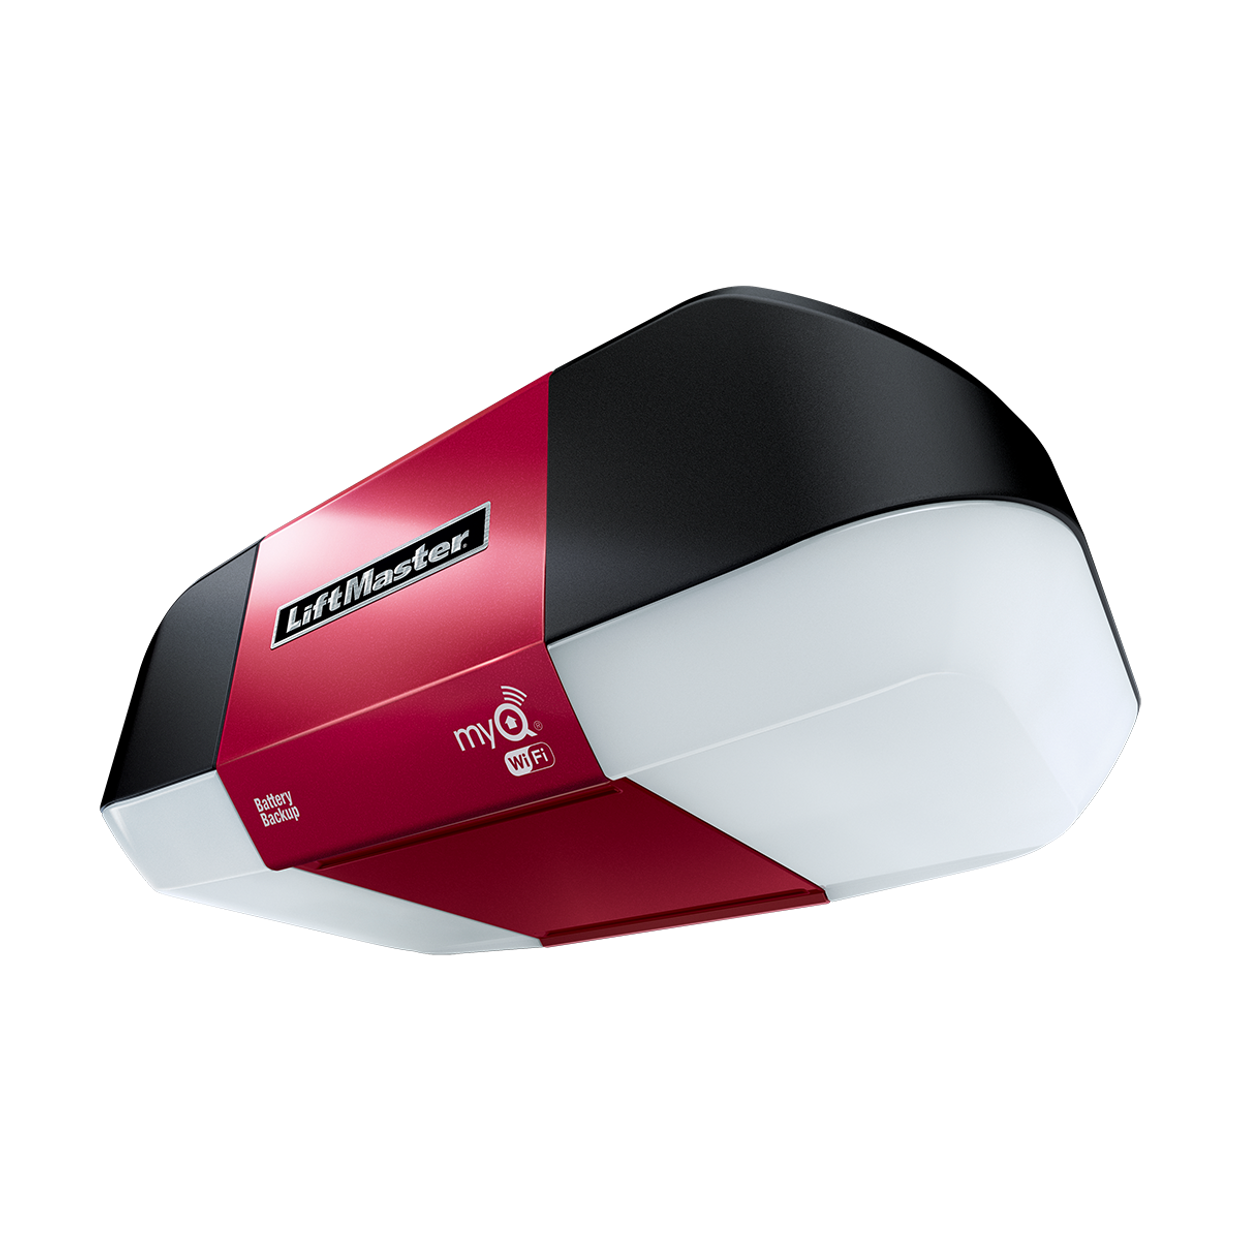 WLED LiftMaster Garage Door Opener